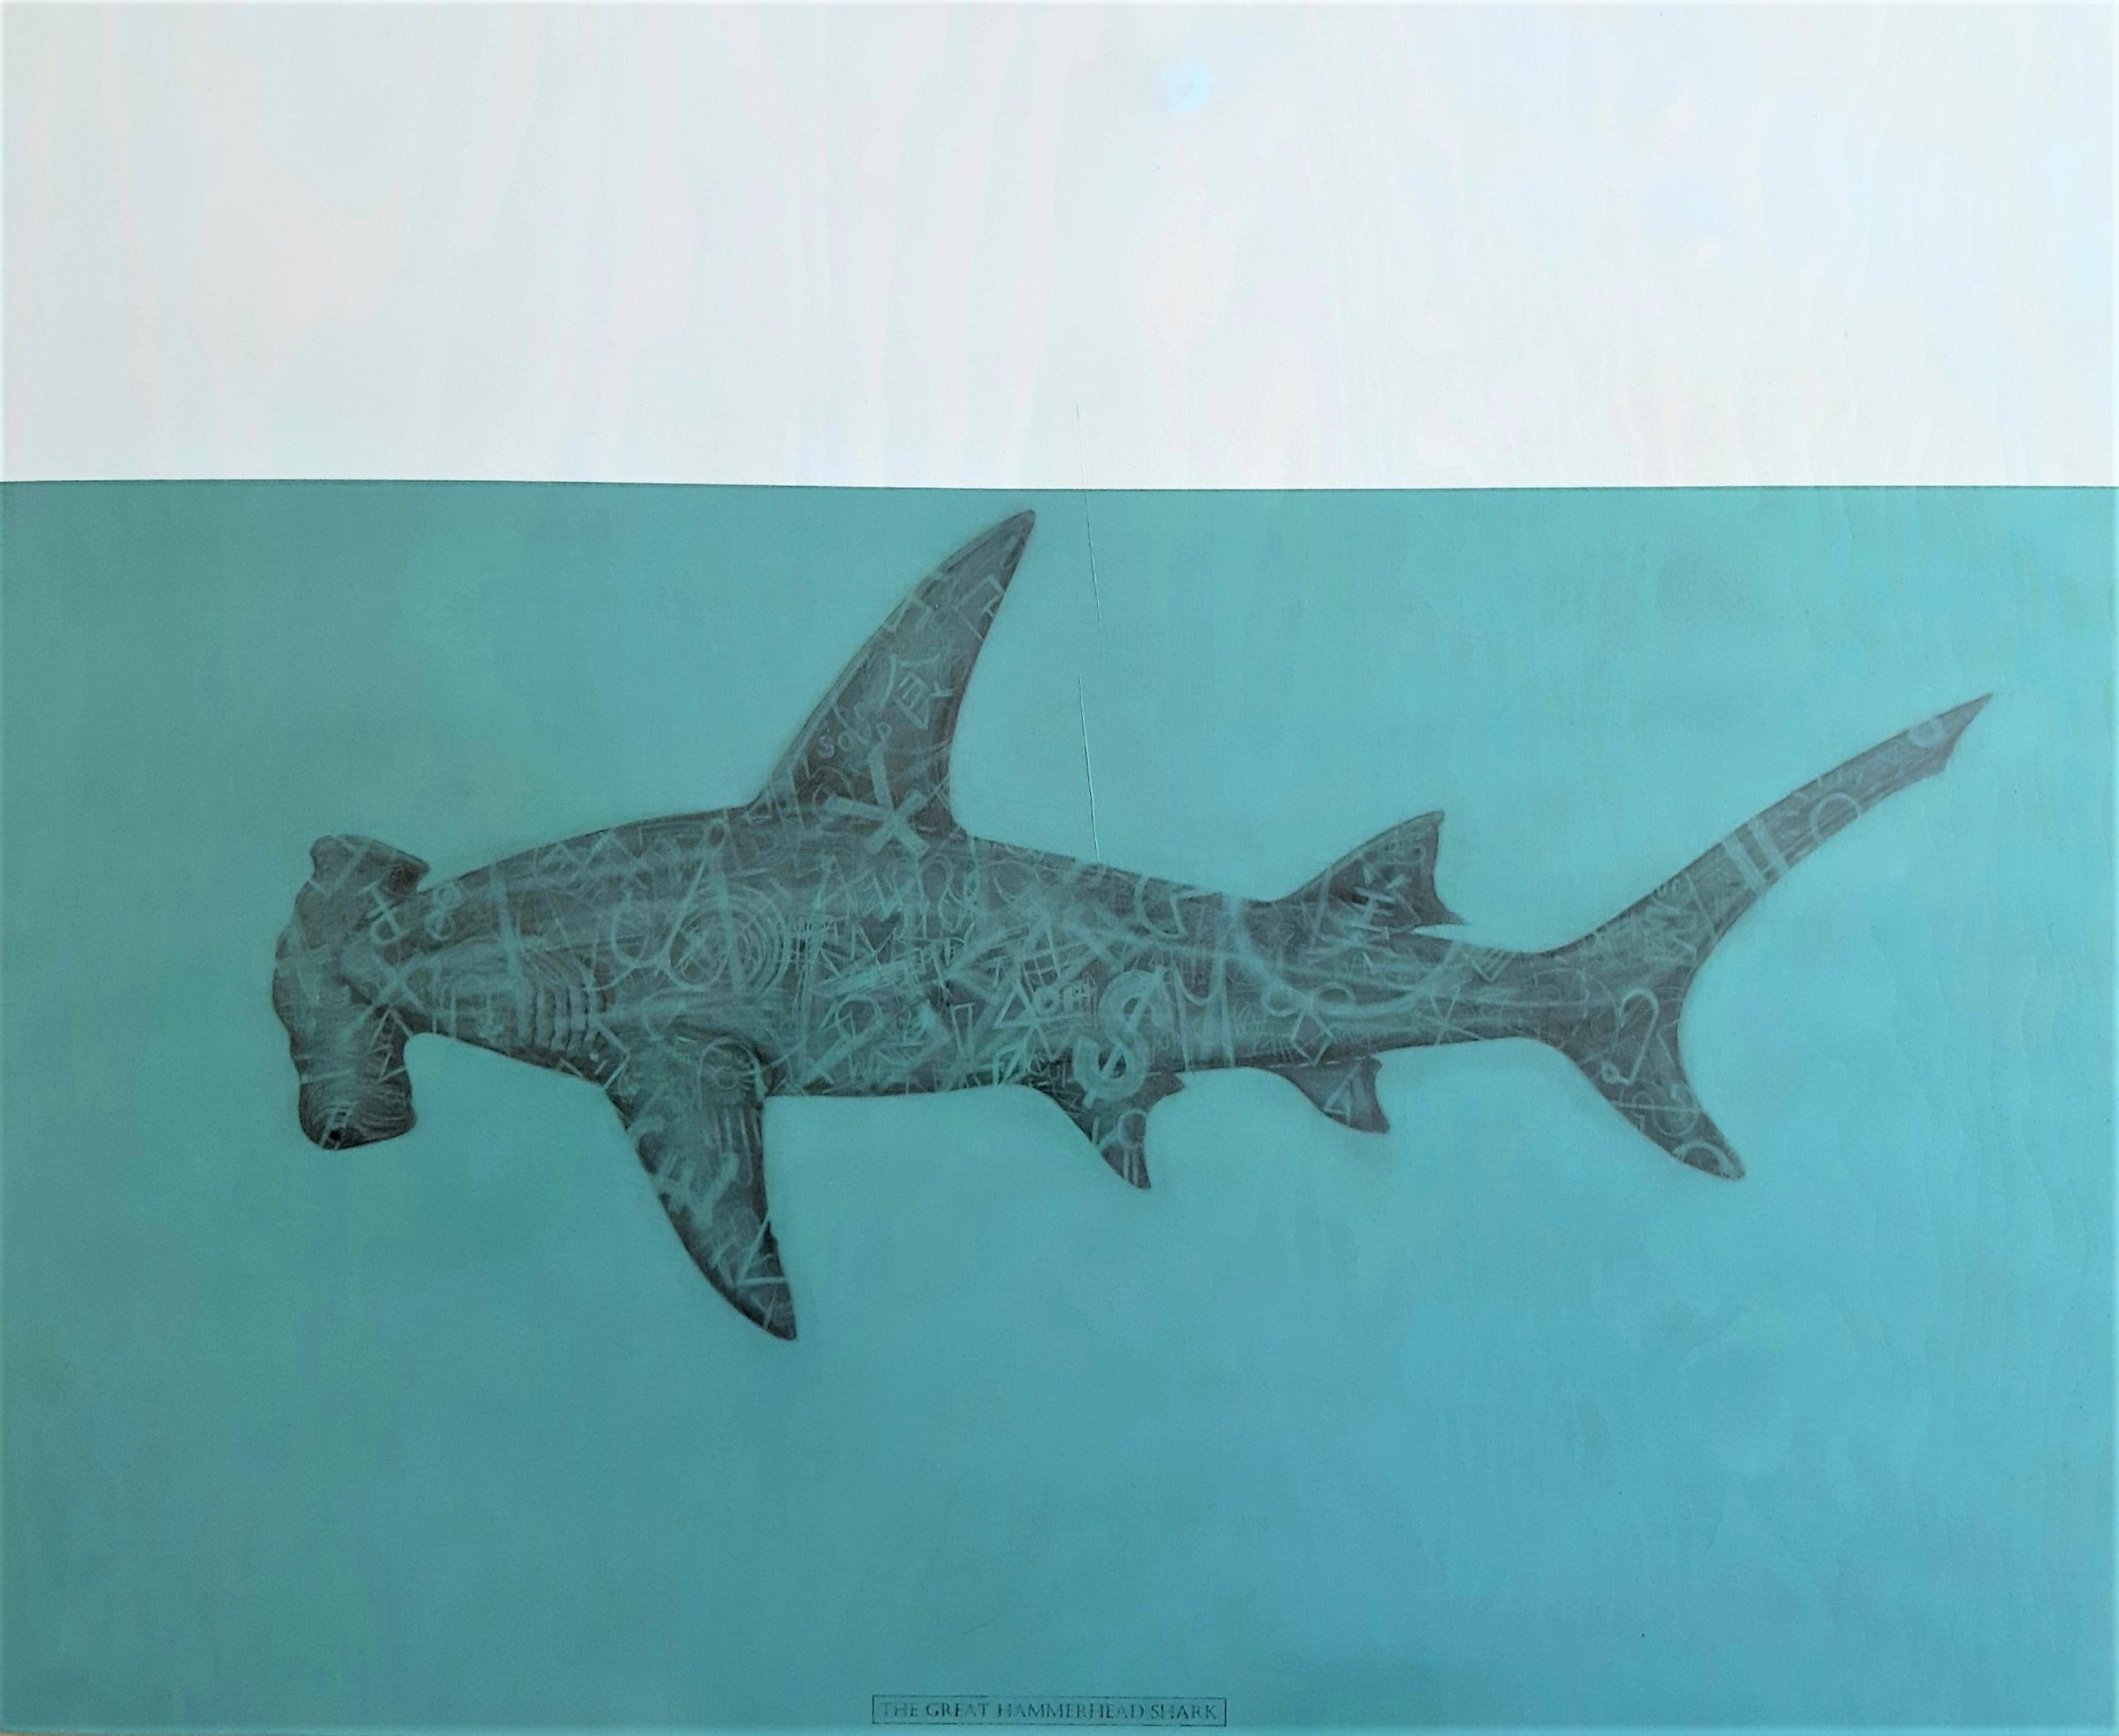 The Great Hammerhead Shark, 2020. Graphite and acrylic on plywood. Framed in white varnished obeche. 70 x 85 x 4 cm. £1,600